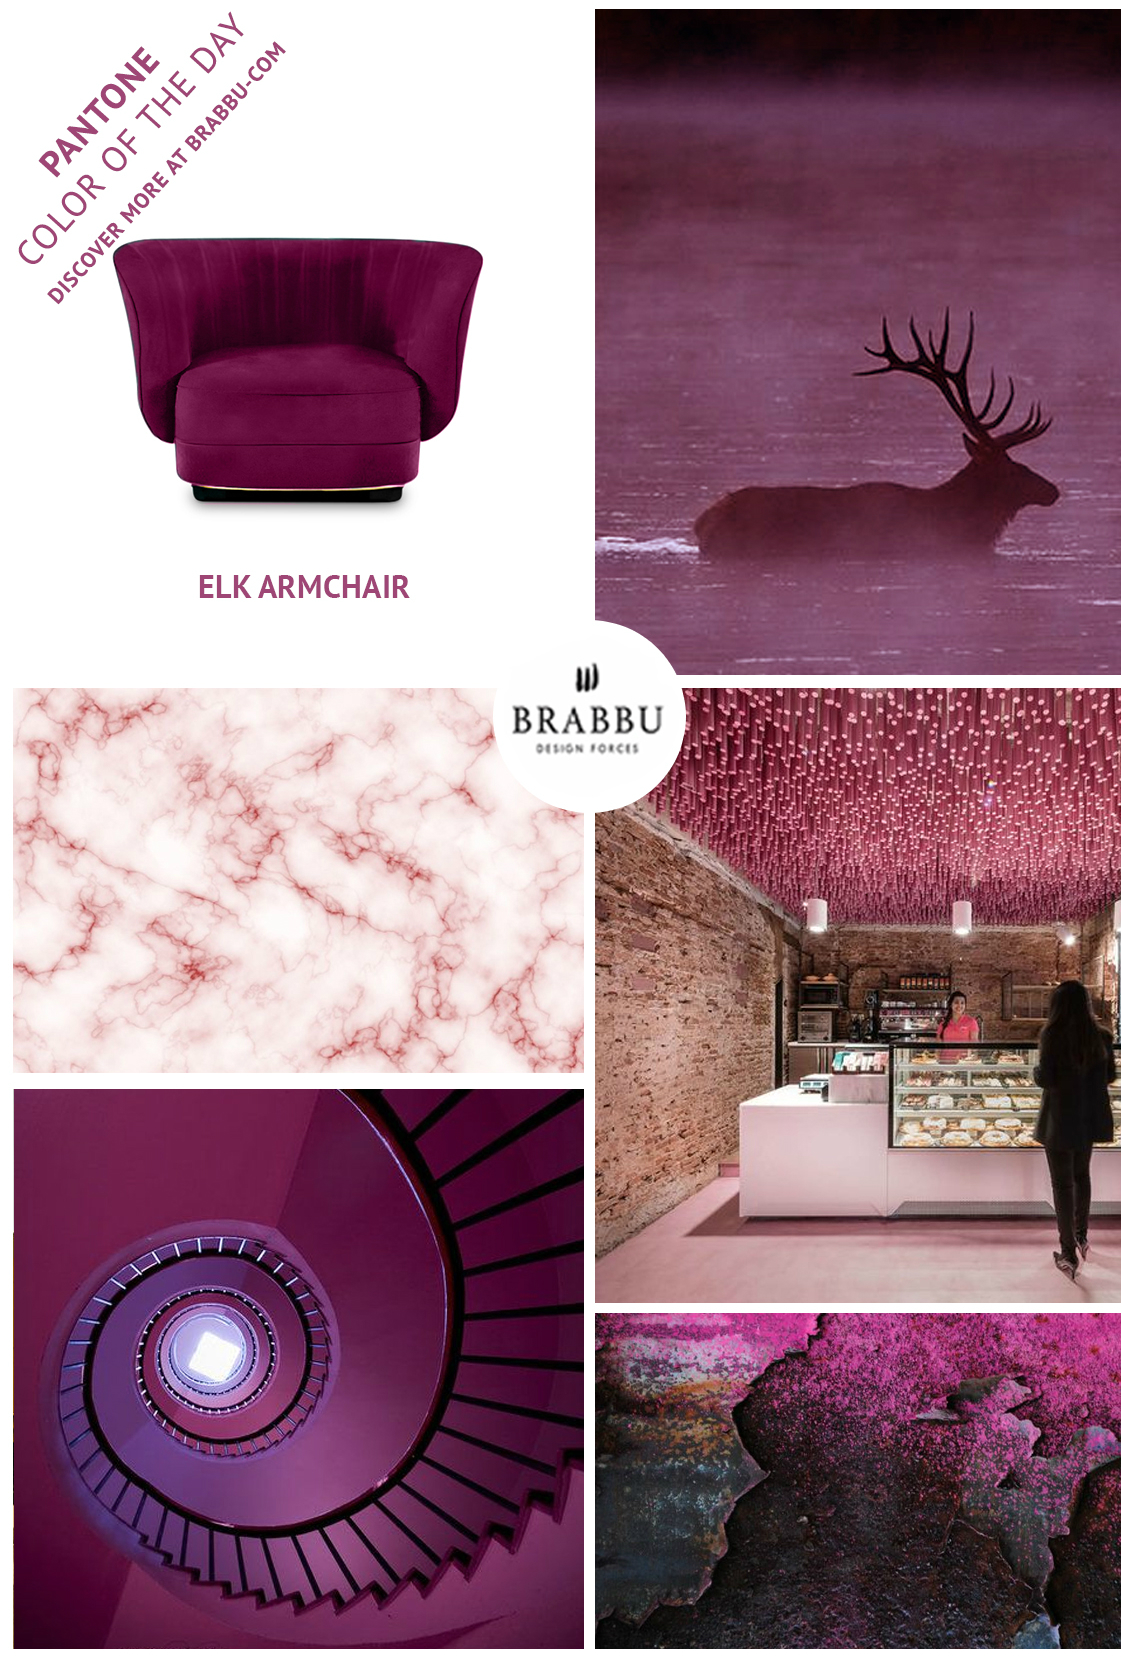 The 4 color trends of the week by Pantone!